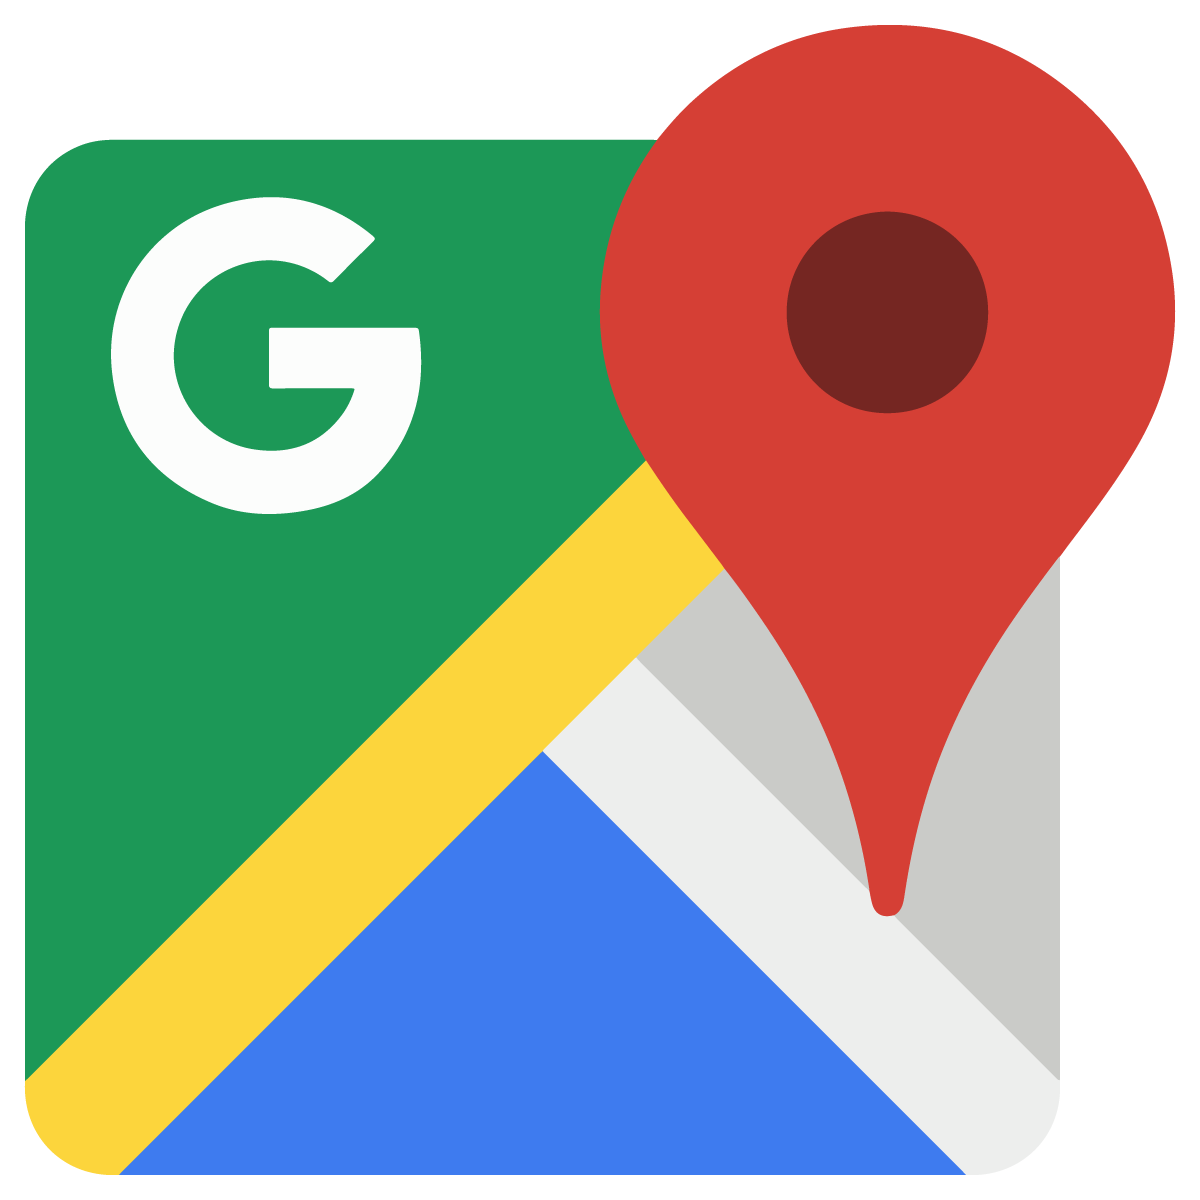 GOOGLE-MAPS-ICON-AVALON-EXCHANGE